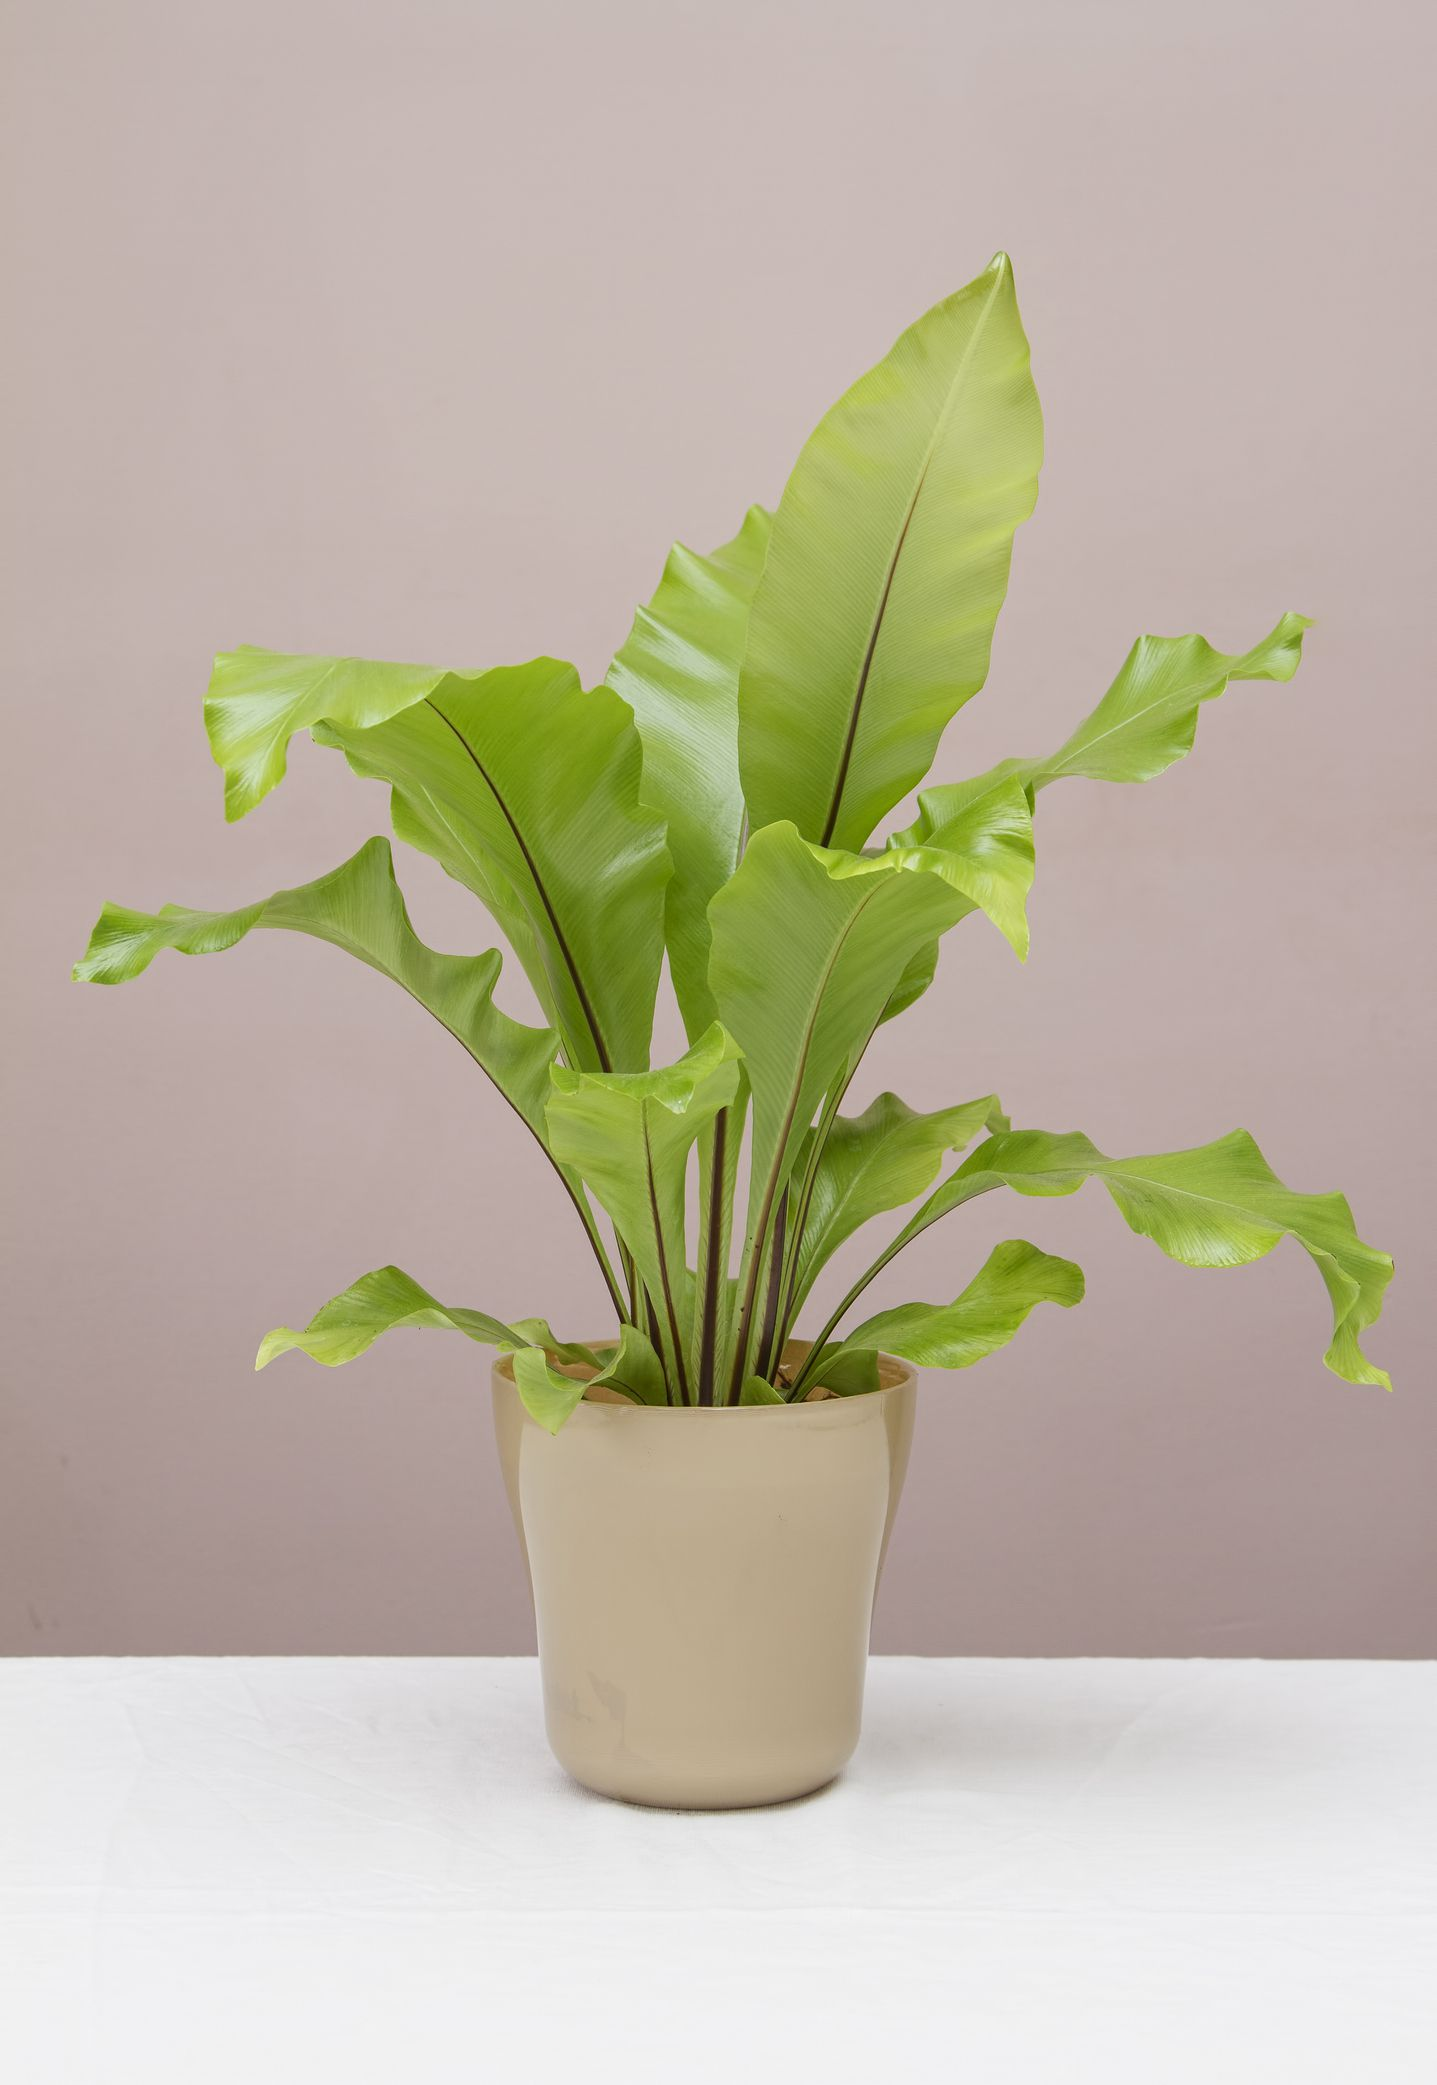 How to Care for Your Bird's Nest Fern